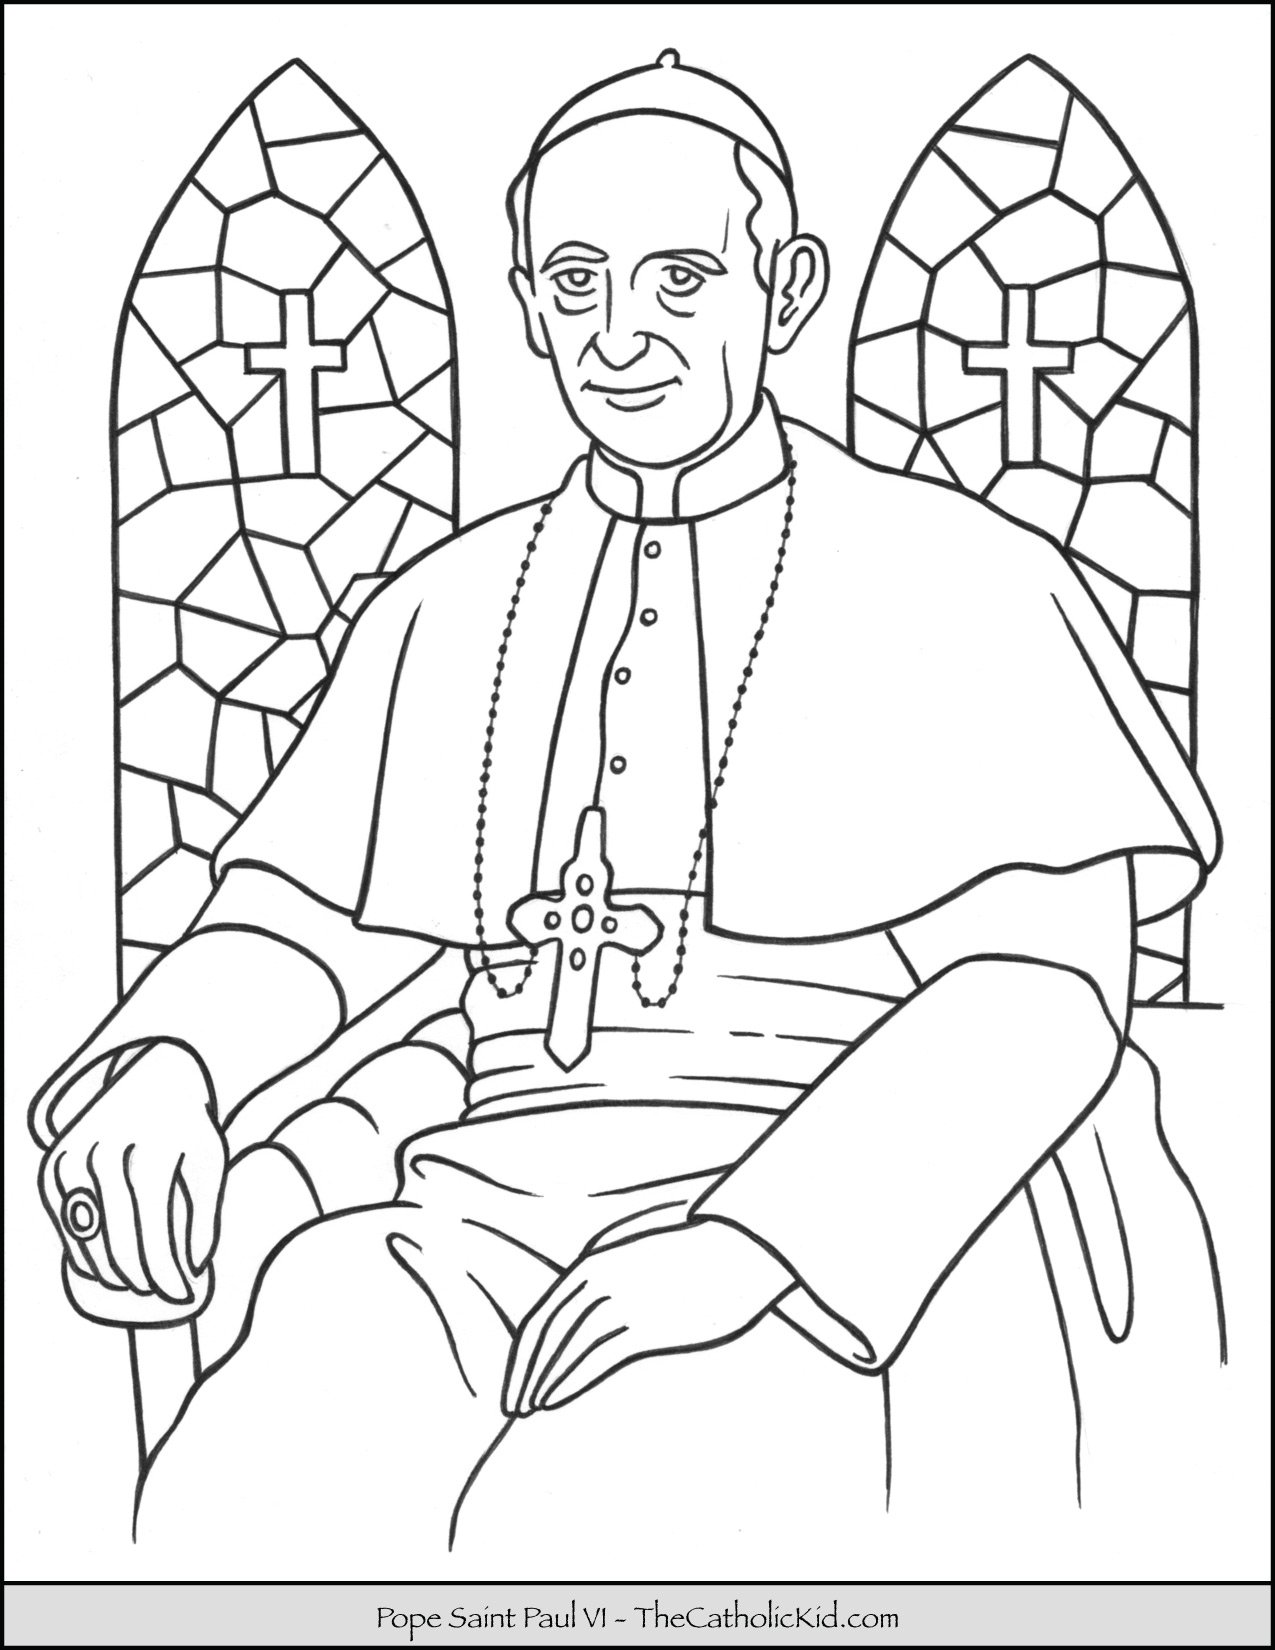 Pope Saint Paul VI Coloring Page - TheCatholicKid.com